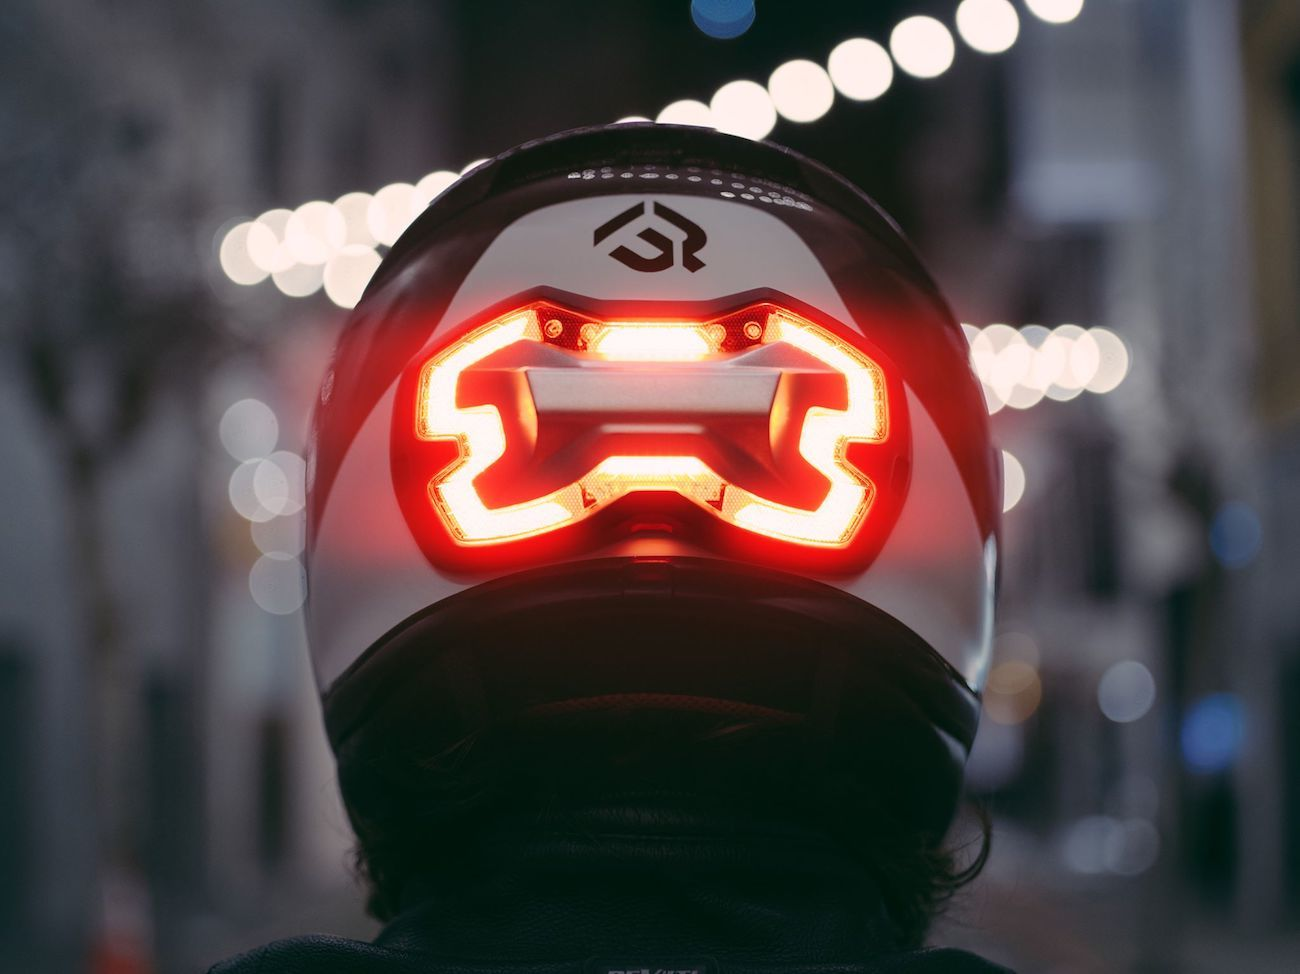 BrakeFree+Smart+LED+Safety+Device